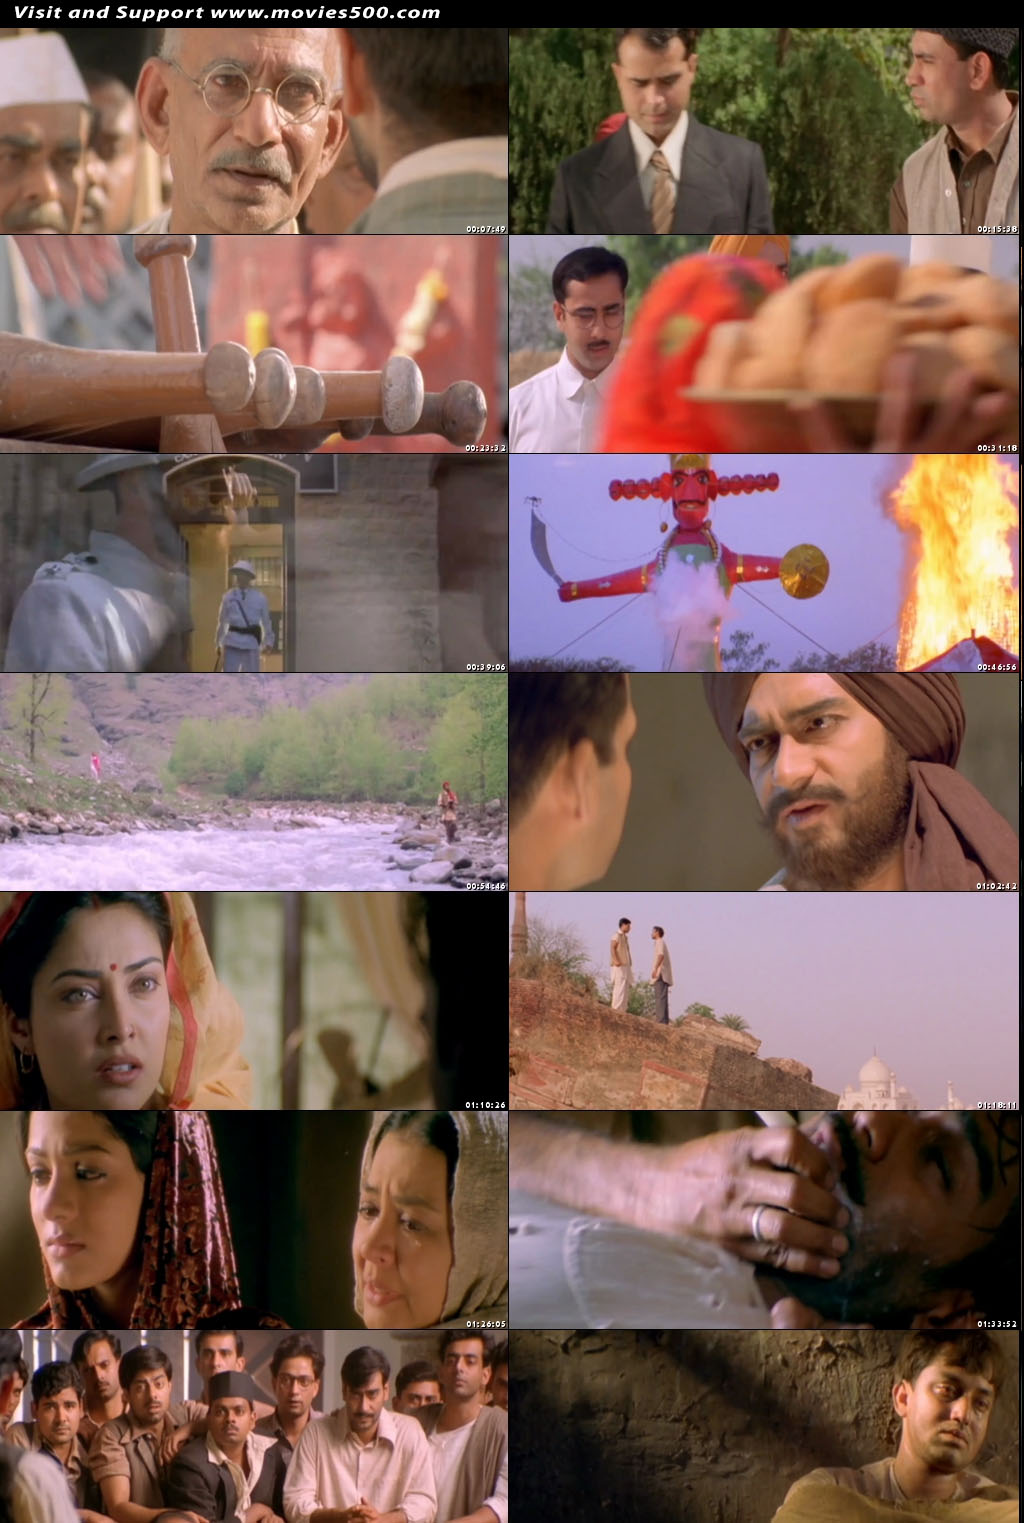 The Legend Of Bhagat Singh 2002 Full Movie 300MB Download at movies500.com